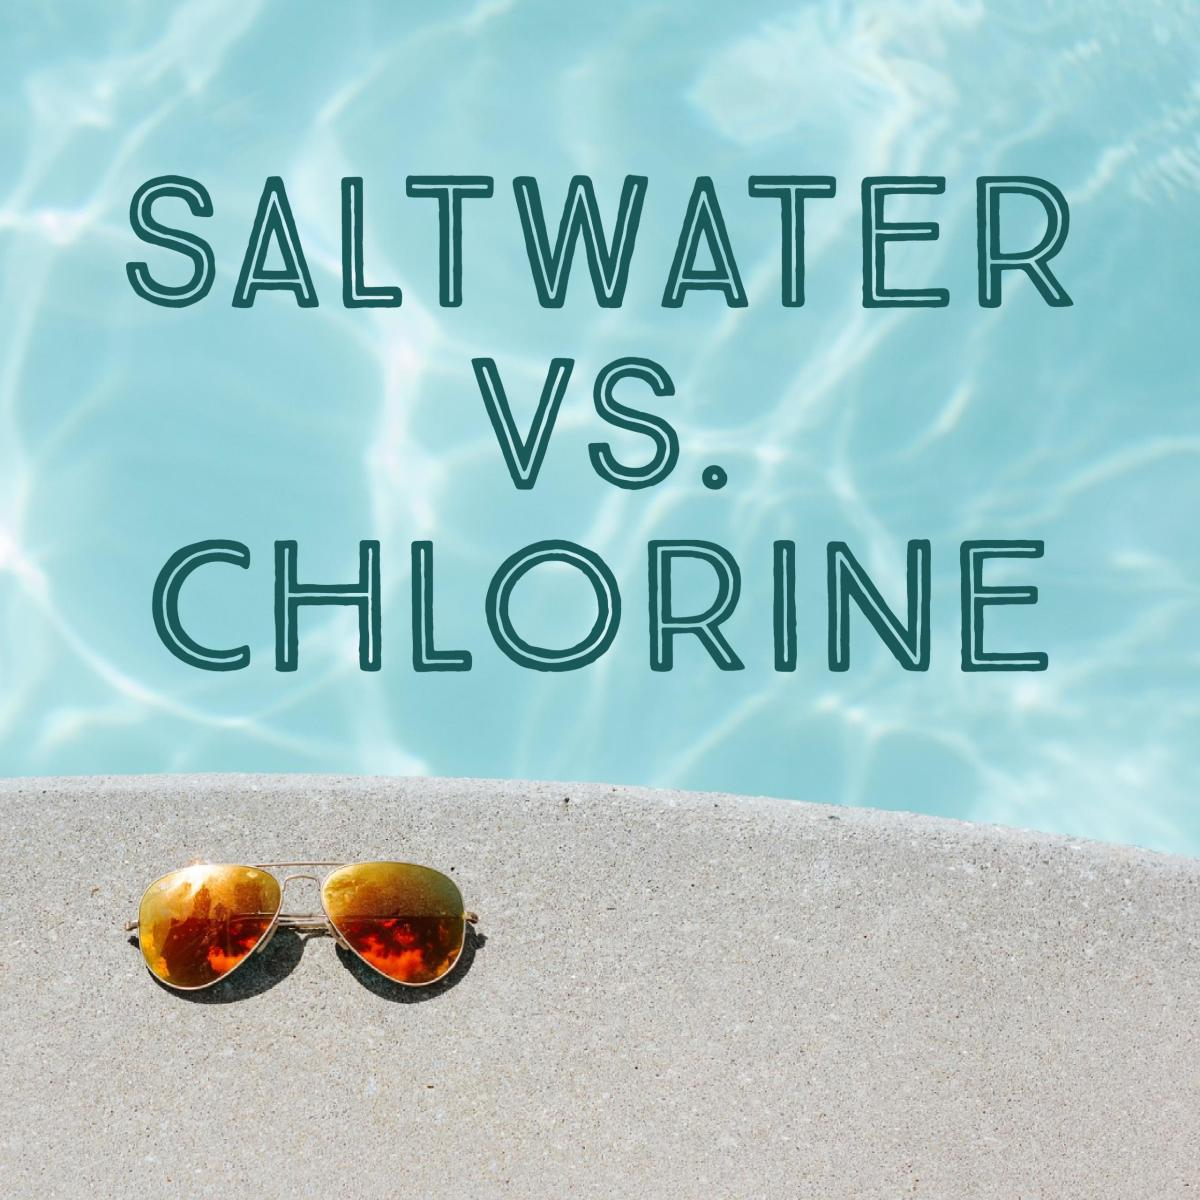 Saltwater Vs Chlorine Based Swimming Pools Which Is Better Dengarden